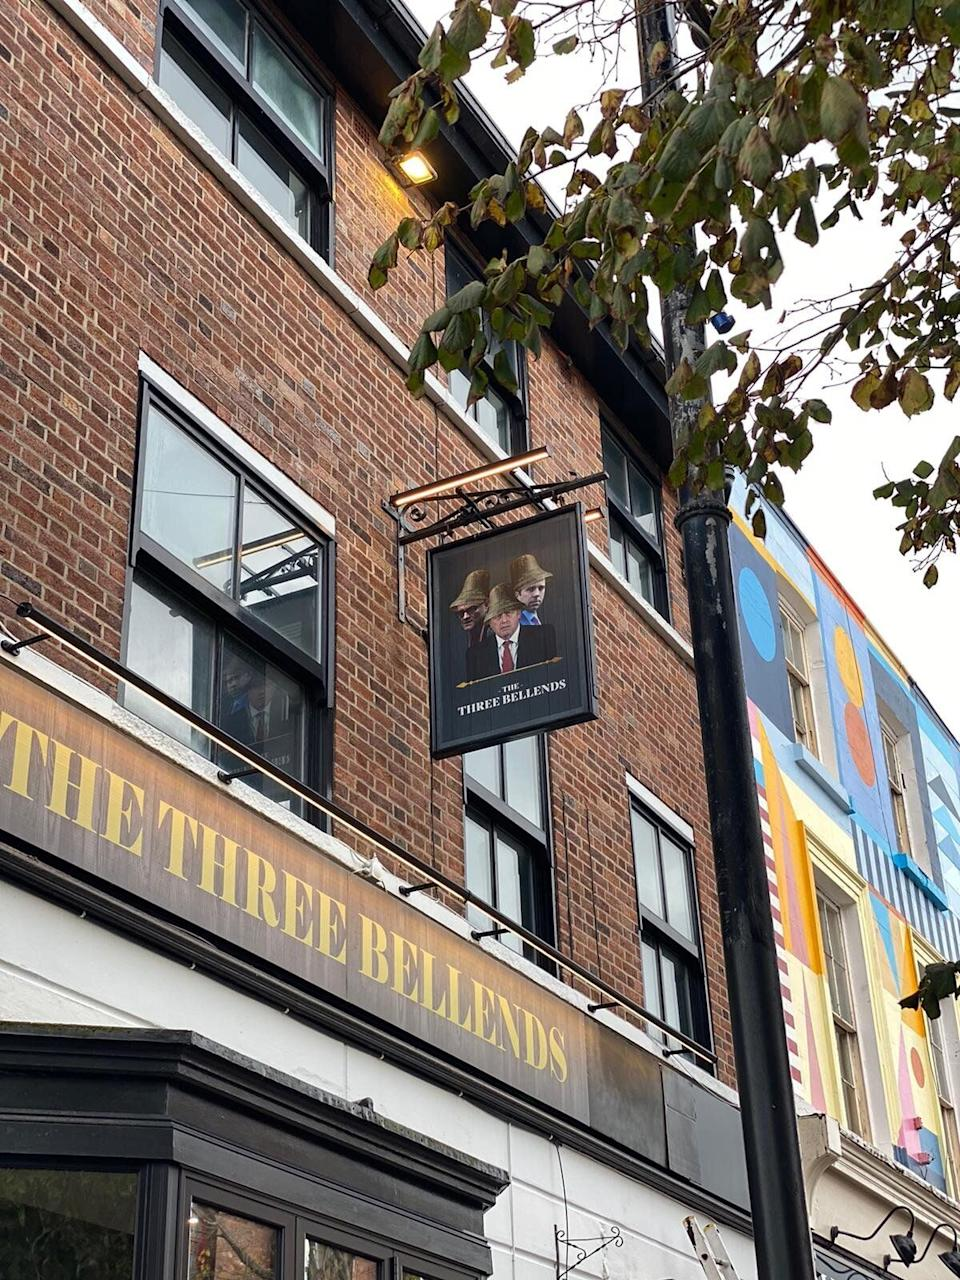 A Merseyside pub has temporarily renamed itself 'The Three Bellends' in protest against the government. (Photo: HuffPost UK)